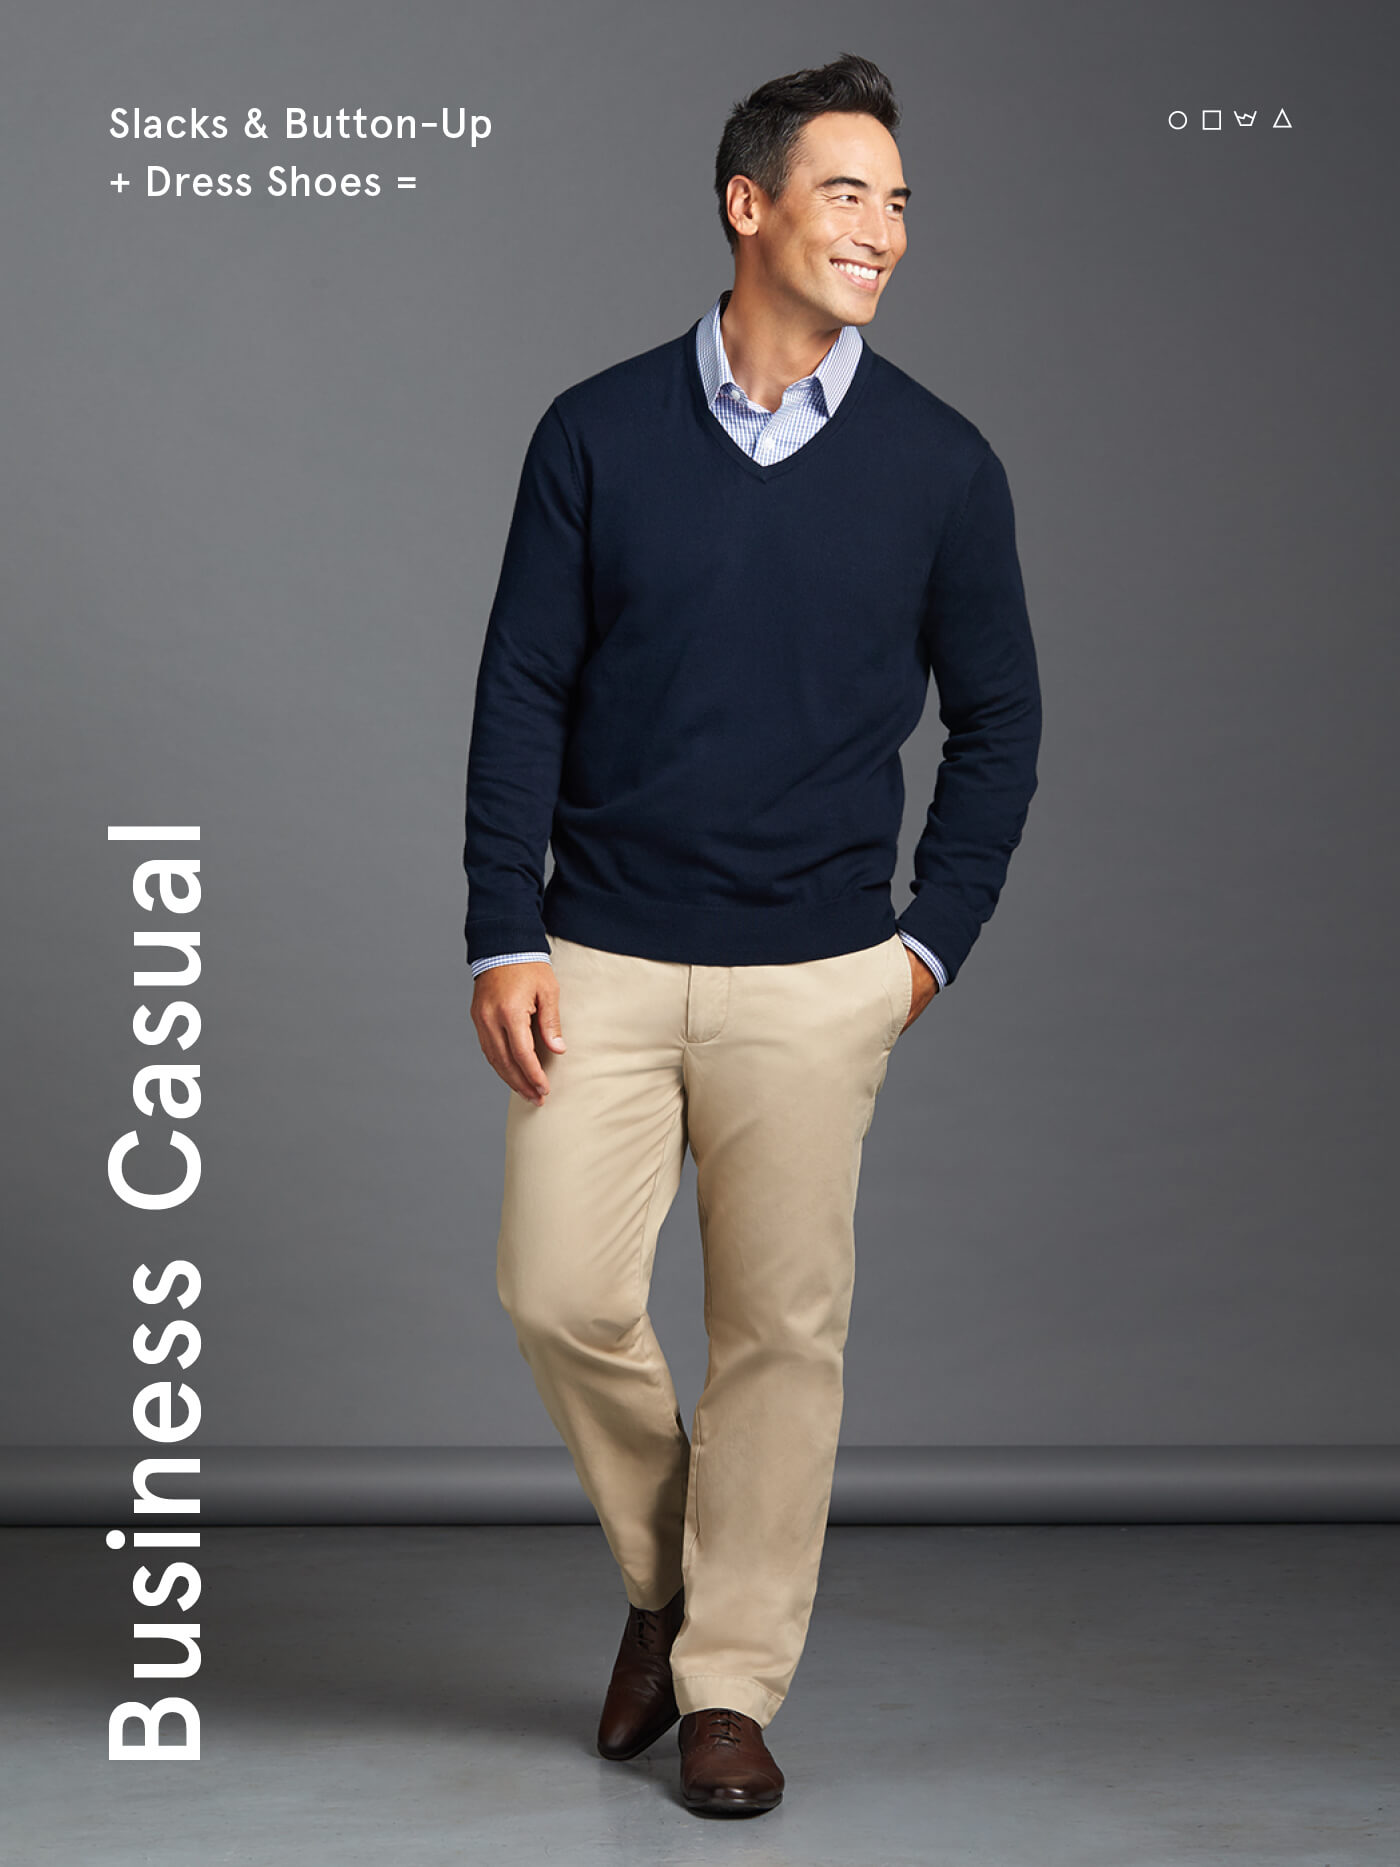 2a644220dd0 what is business casual for men  slack and a button-up with dress shoes